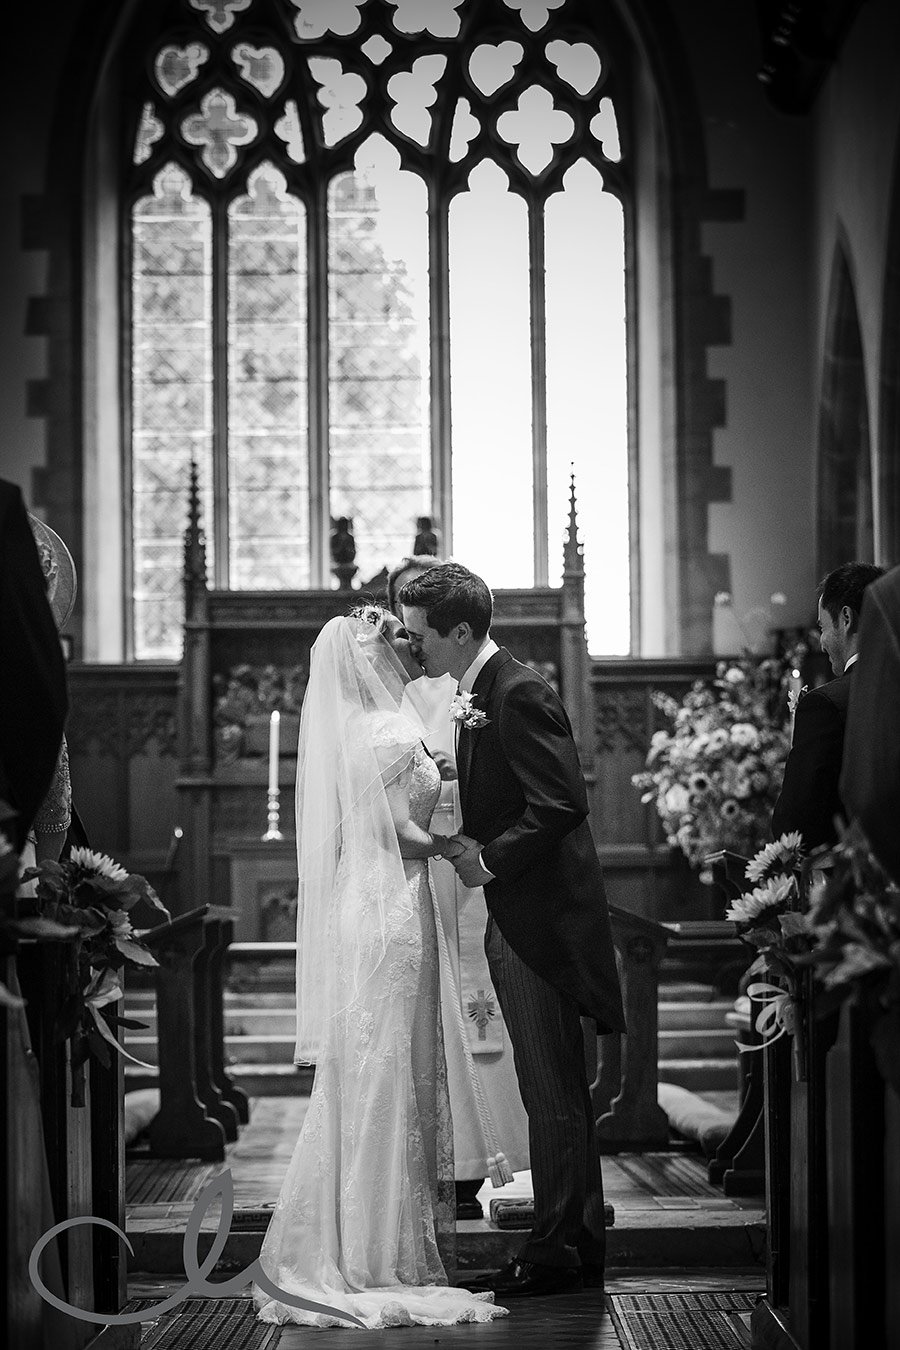 Laura-&-Henry's-Bodium-Castle-Wedding-28